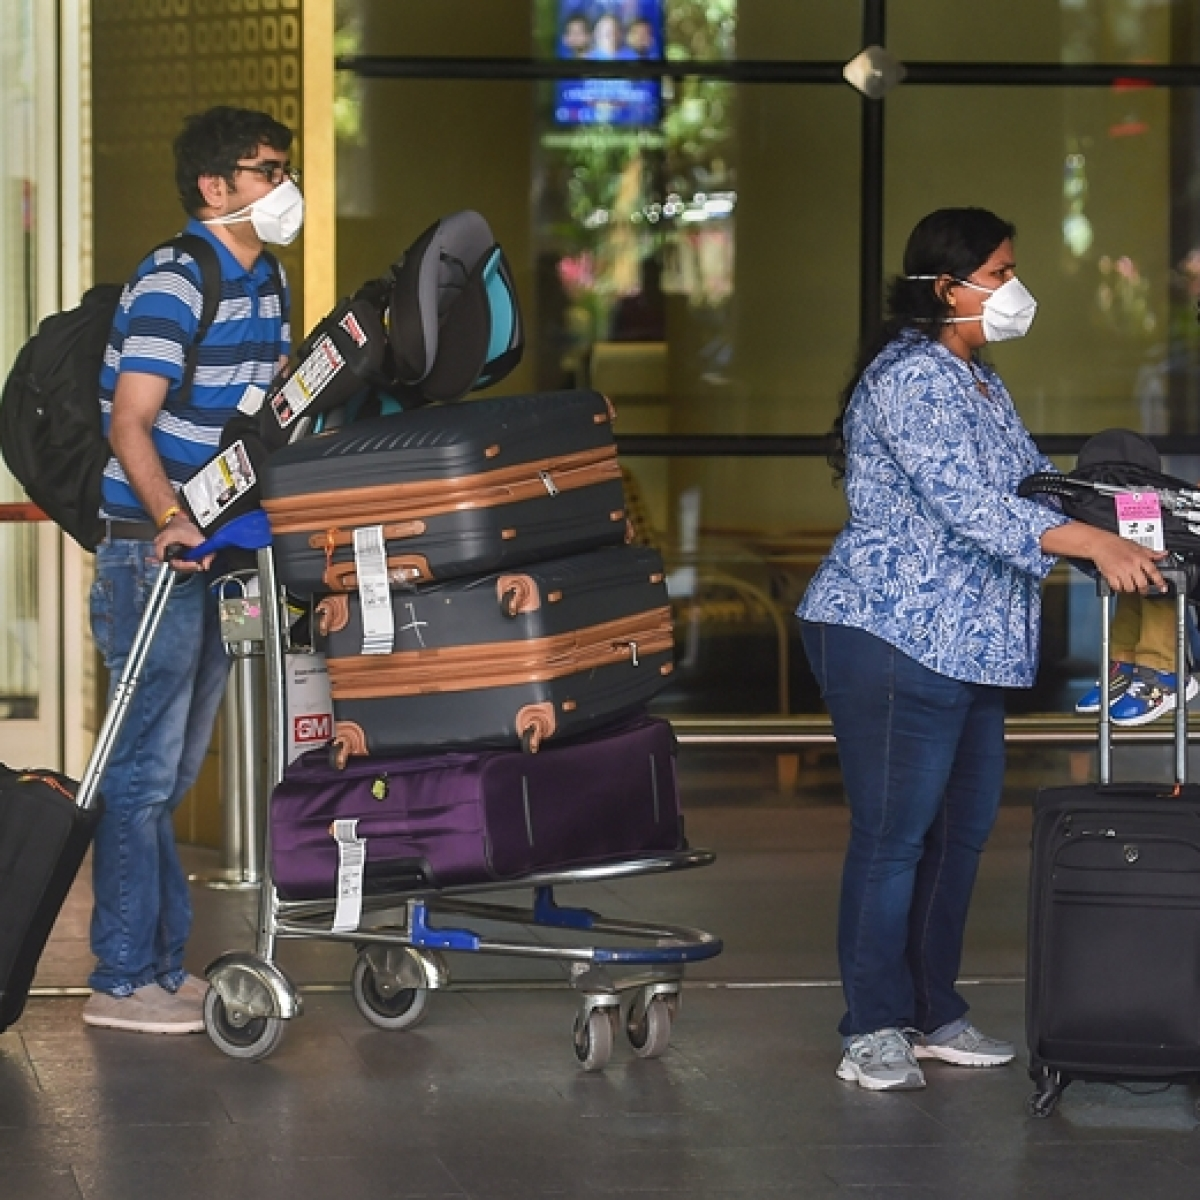 Coronavirus update: After Europe, India bars travellers from Afghanistan, Philippines, Malaysia